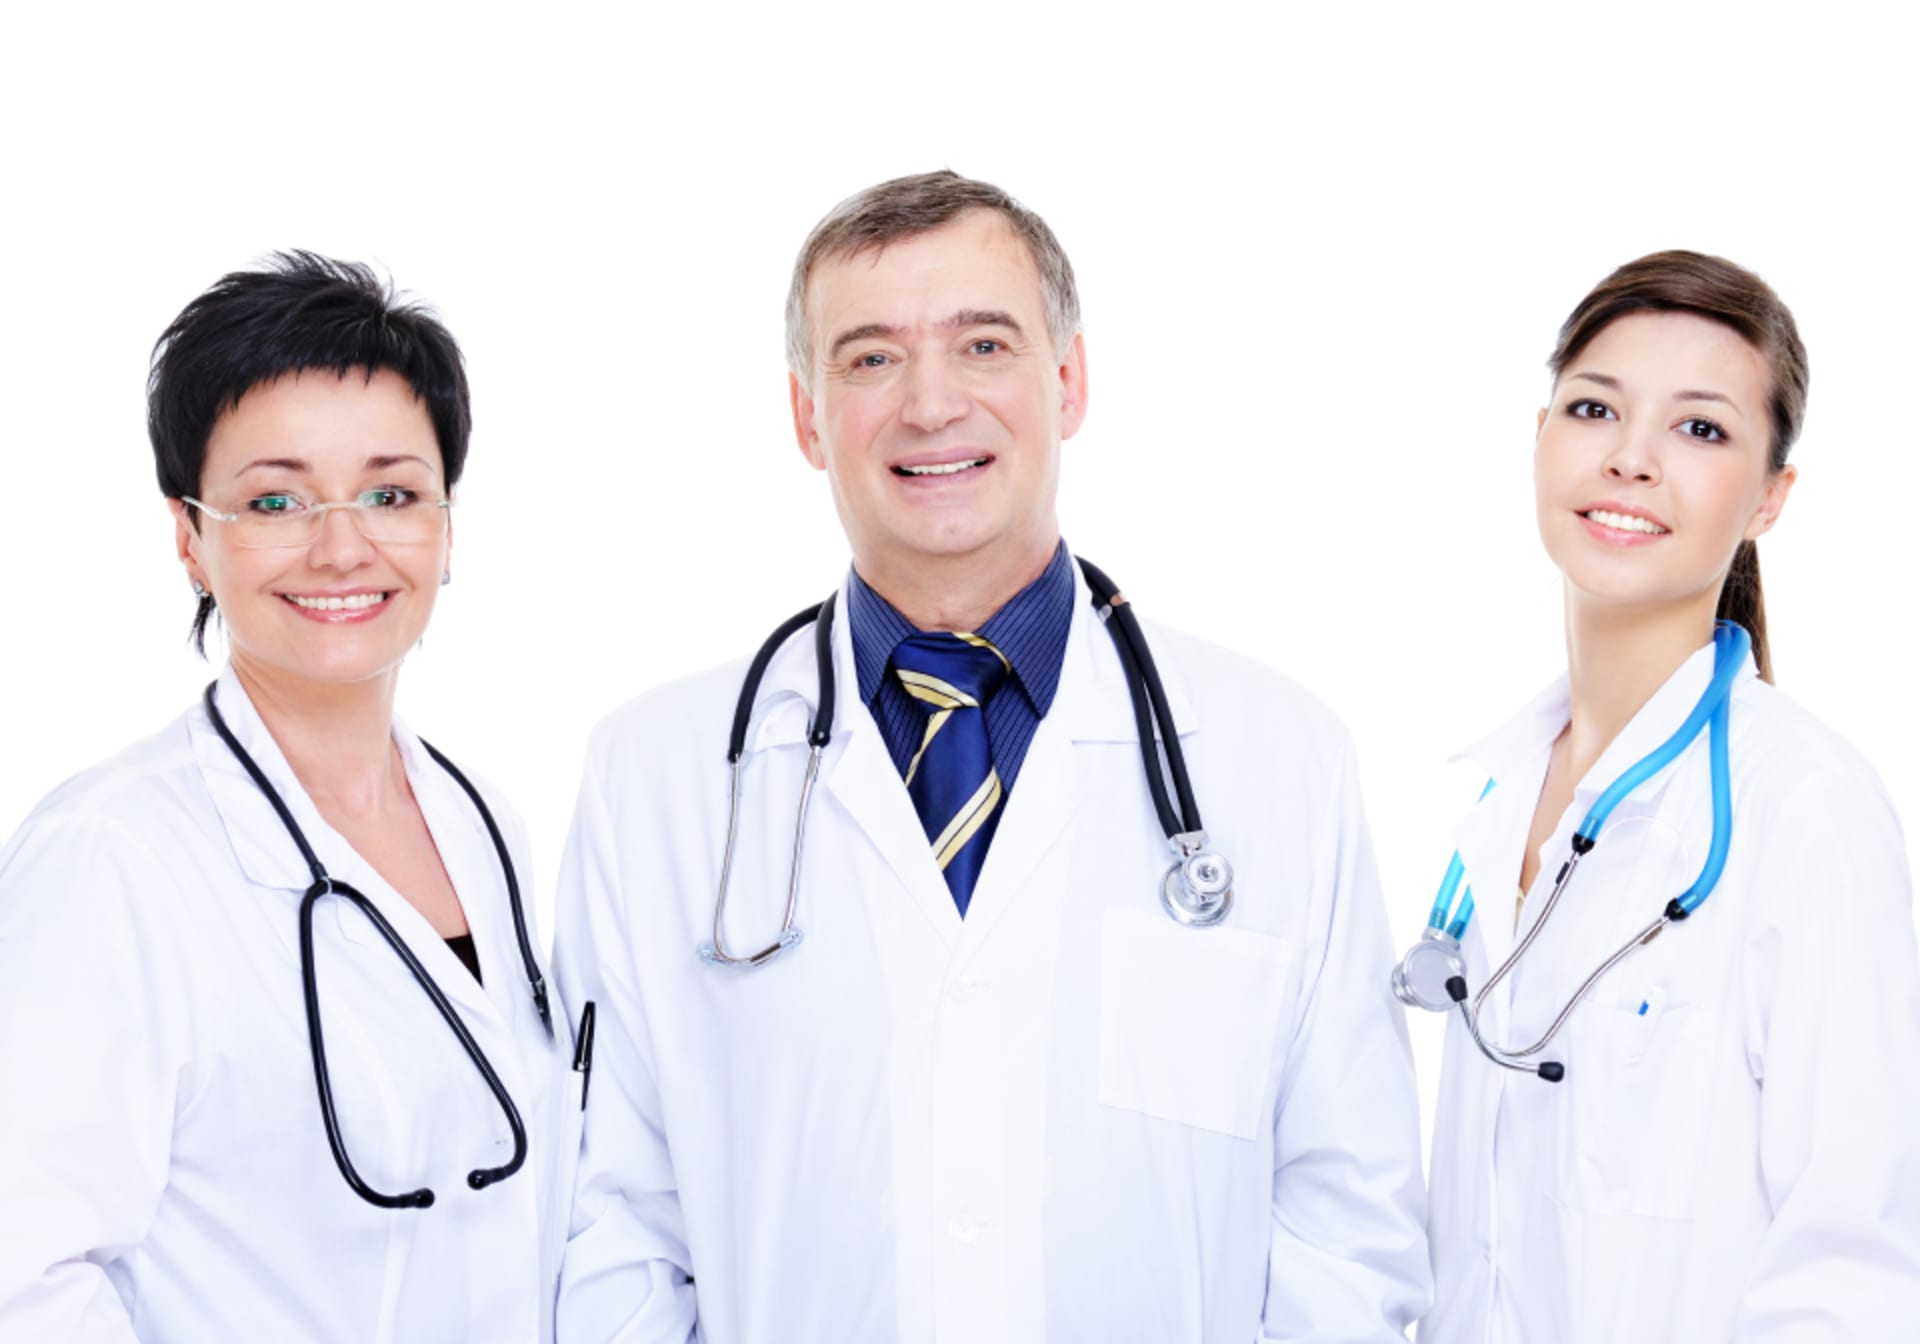 Front view three happy medical doctors standing together